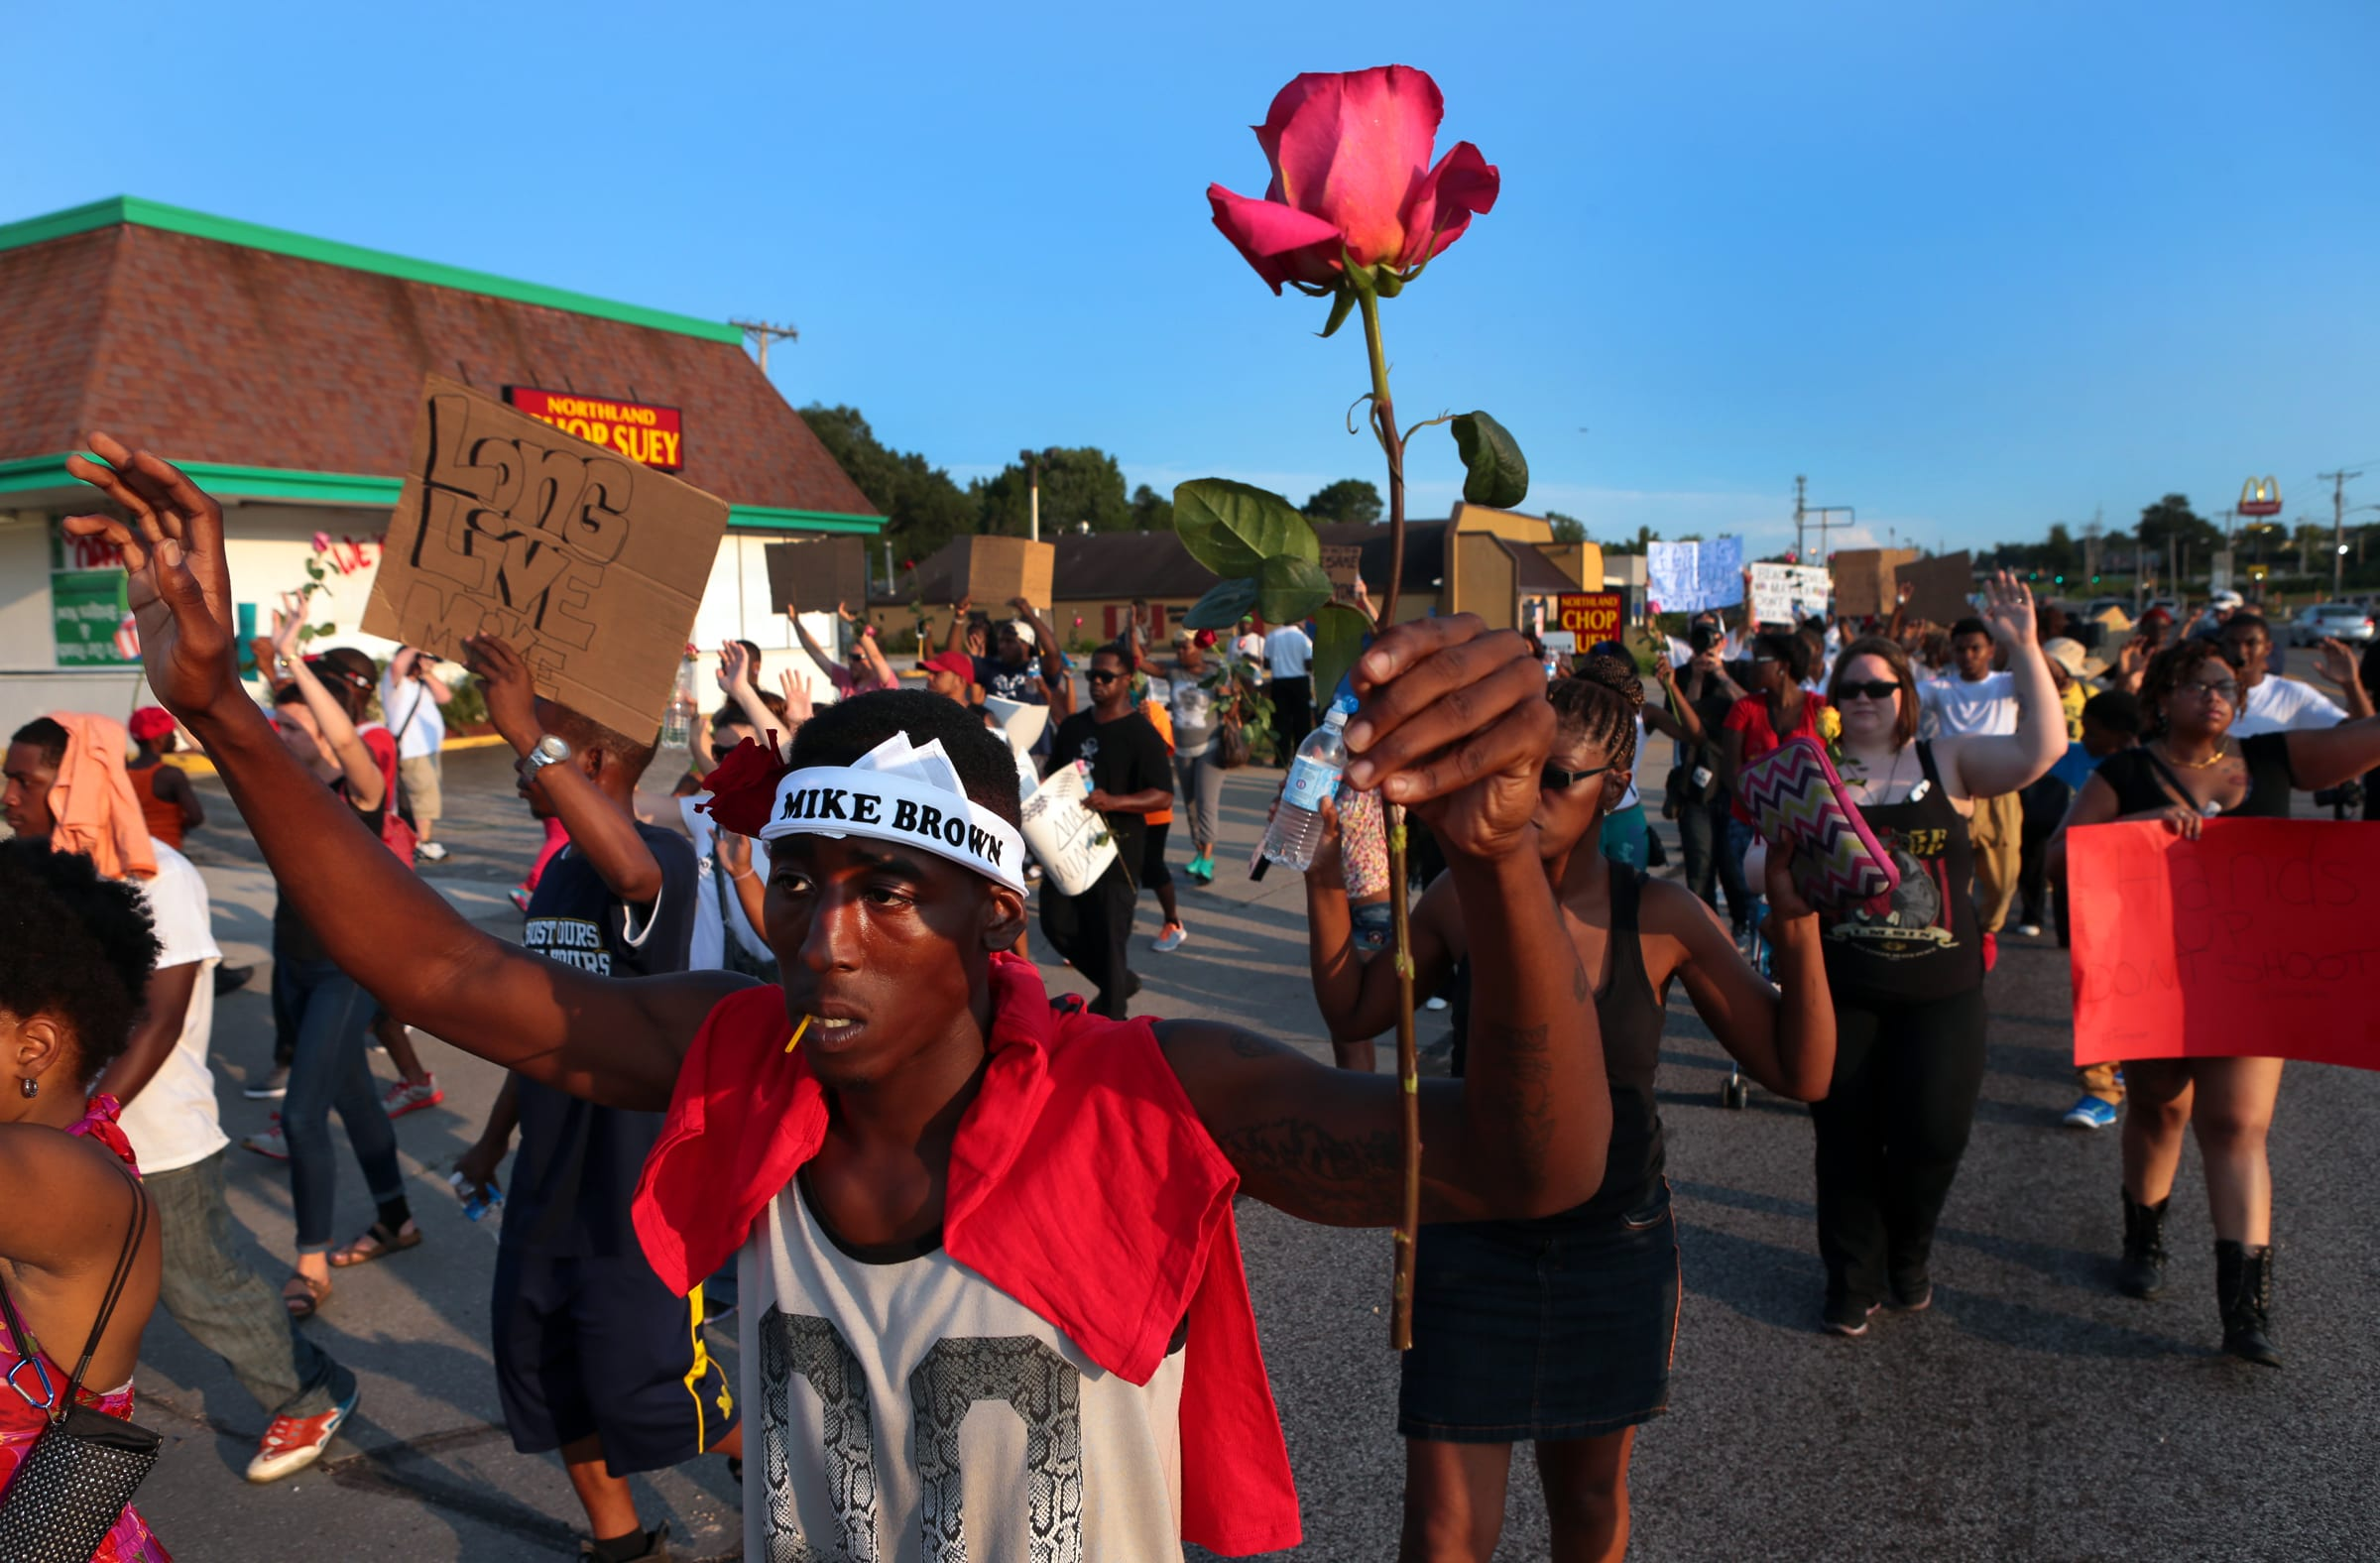 """Stevon Statom walks in a protest march on West Florissant Avenue on Tuesday, Aug. 19, 2014 in Ferguson.  Statom moved into an apartment at Canfield Green one week before Michael Brown was killed.  """"I'm trying to make a change in this world,"""" he said. Photo by Robert Cohen, rcohen@post-dispatch.com"""